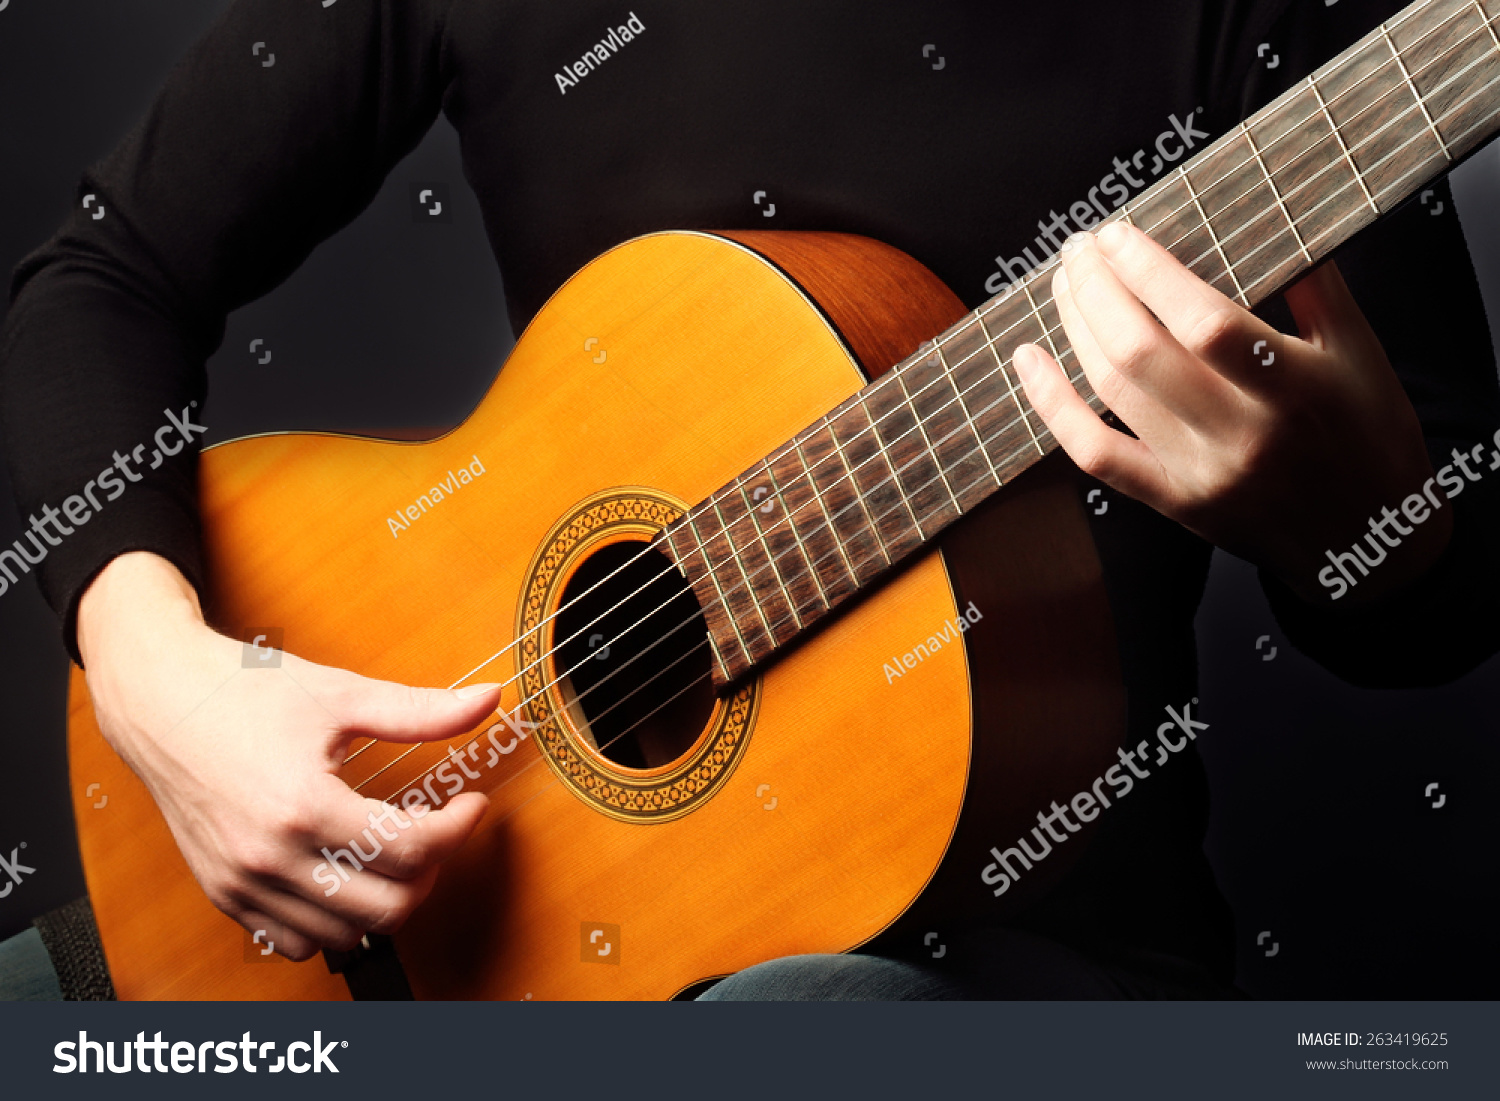 acoustic guitar hands closeup playing classical stock. Black Bedroom Furniture Sets. Home Design Ideas